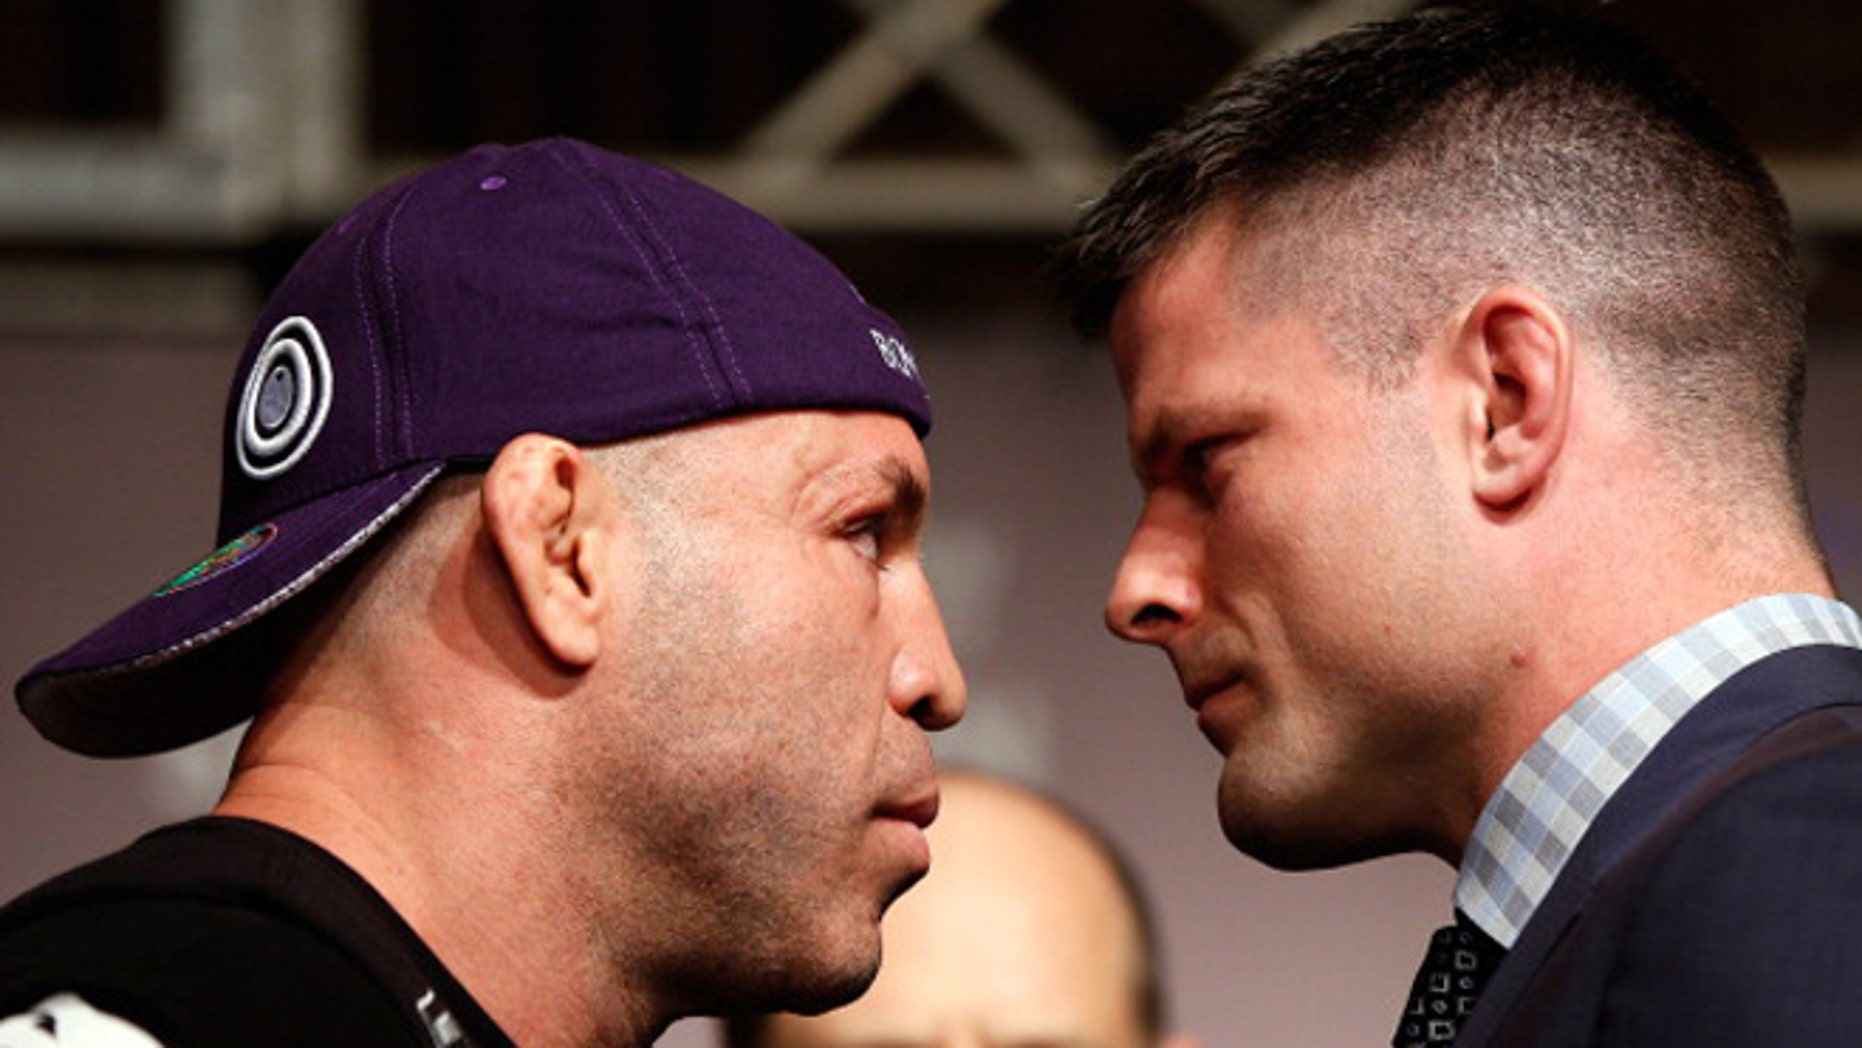 TOKYO, JAPAN - FEBRUARY 28: (L-R) Opponents Wanderlei Silva and Brian Stann face off during a UFC press conference at the Hilton Sjinjuku Hotel on February 28, 2013 in Tokyo, Japan. (Photo by Josh Hedges/Zuffa LLC/Zuffa LLC via Getty Images)